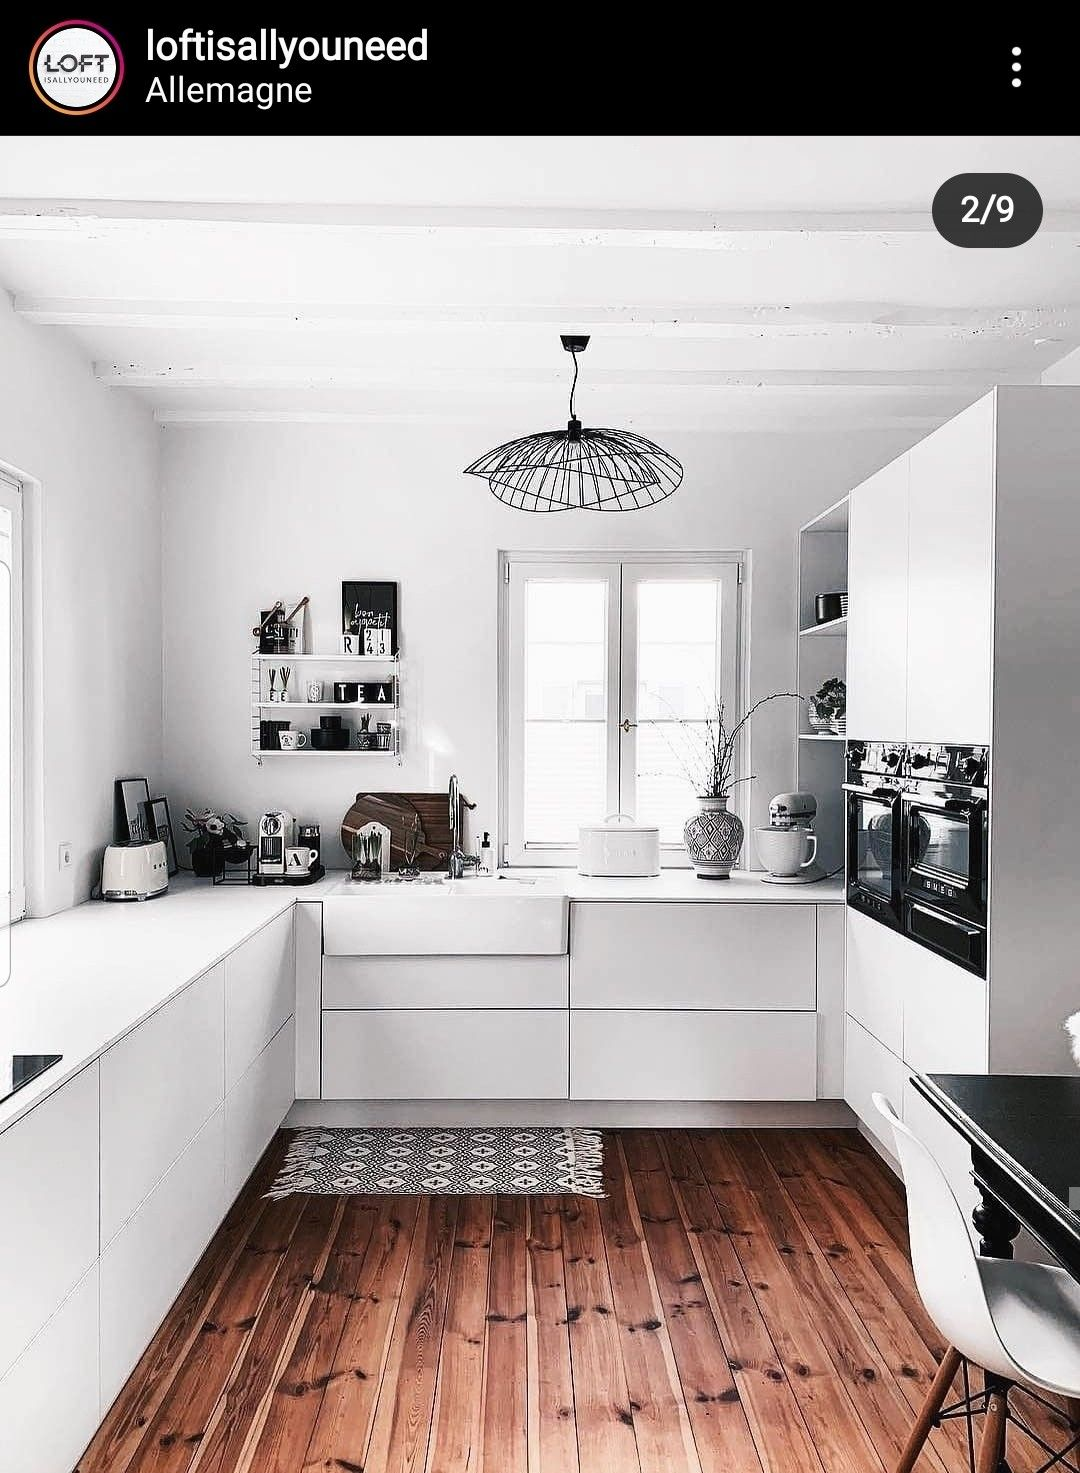 Pin by LoDsigner on CUisinE/kitchen   Kitchen styling, Bright ...